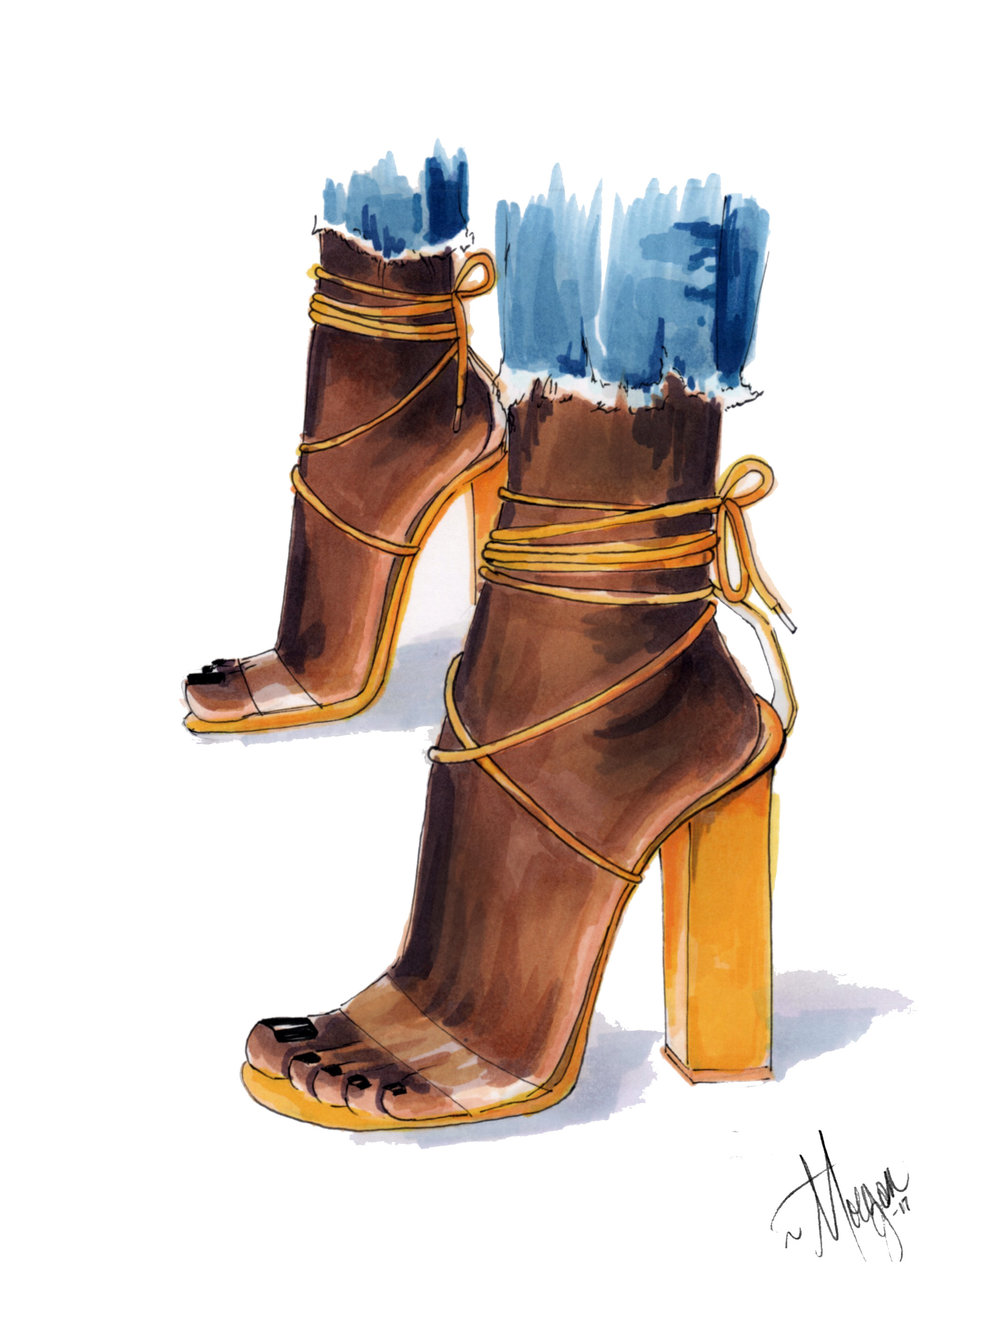 yellow-sandals-illustration-morgan-swank-studio.jpg